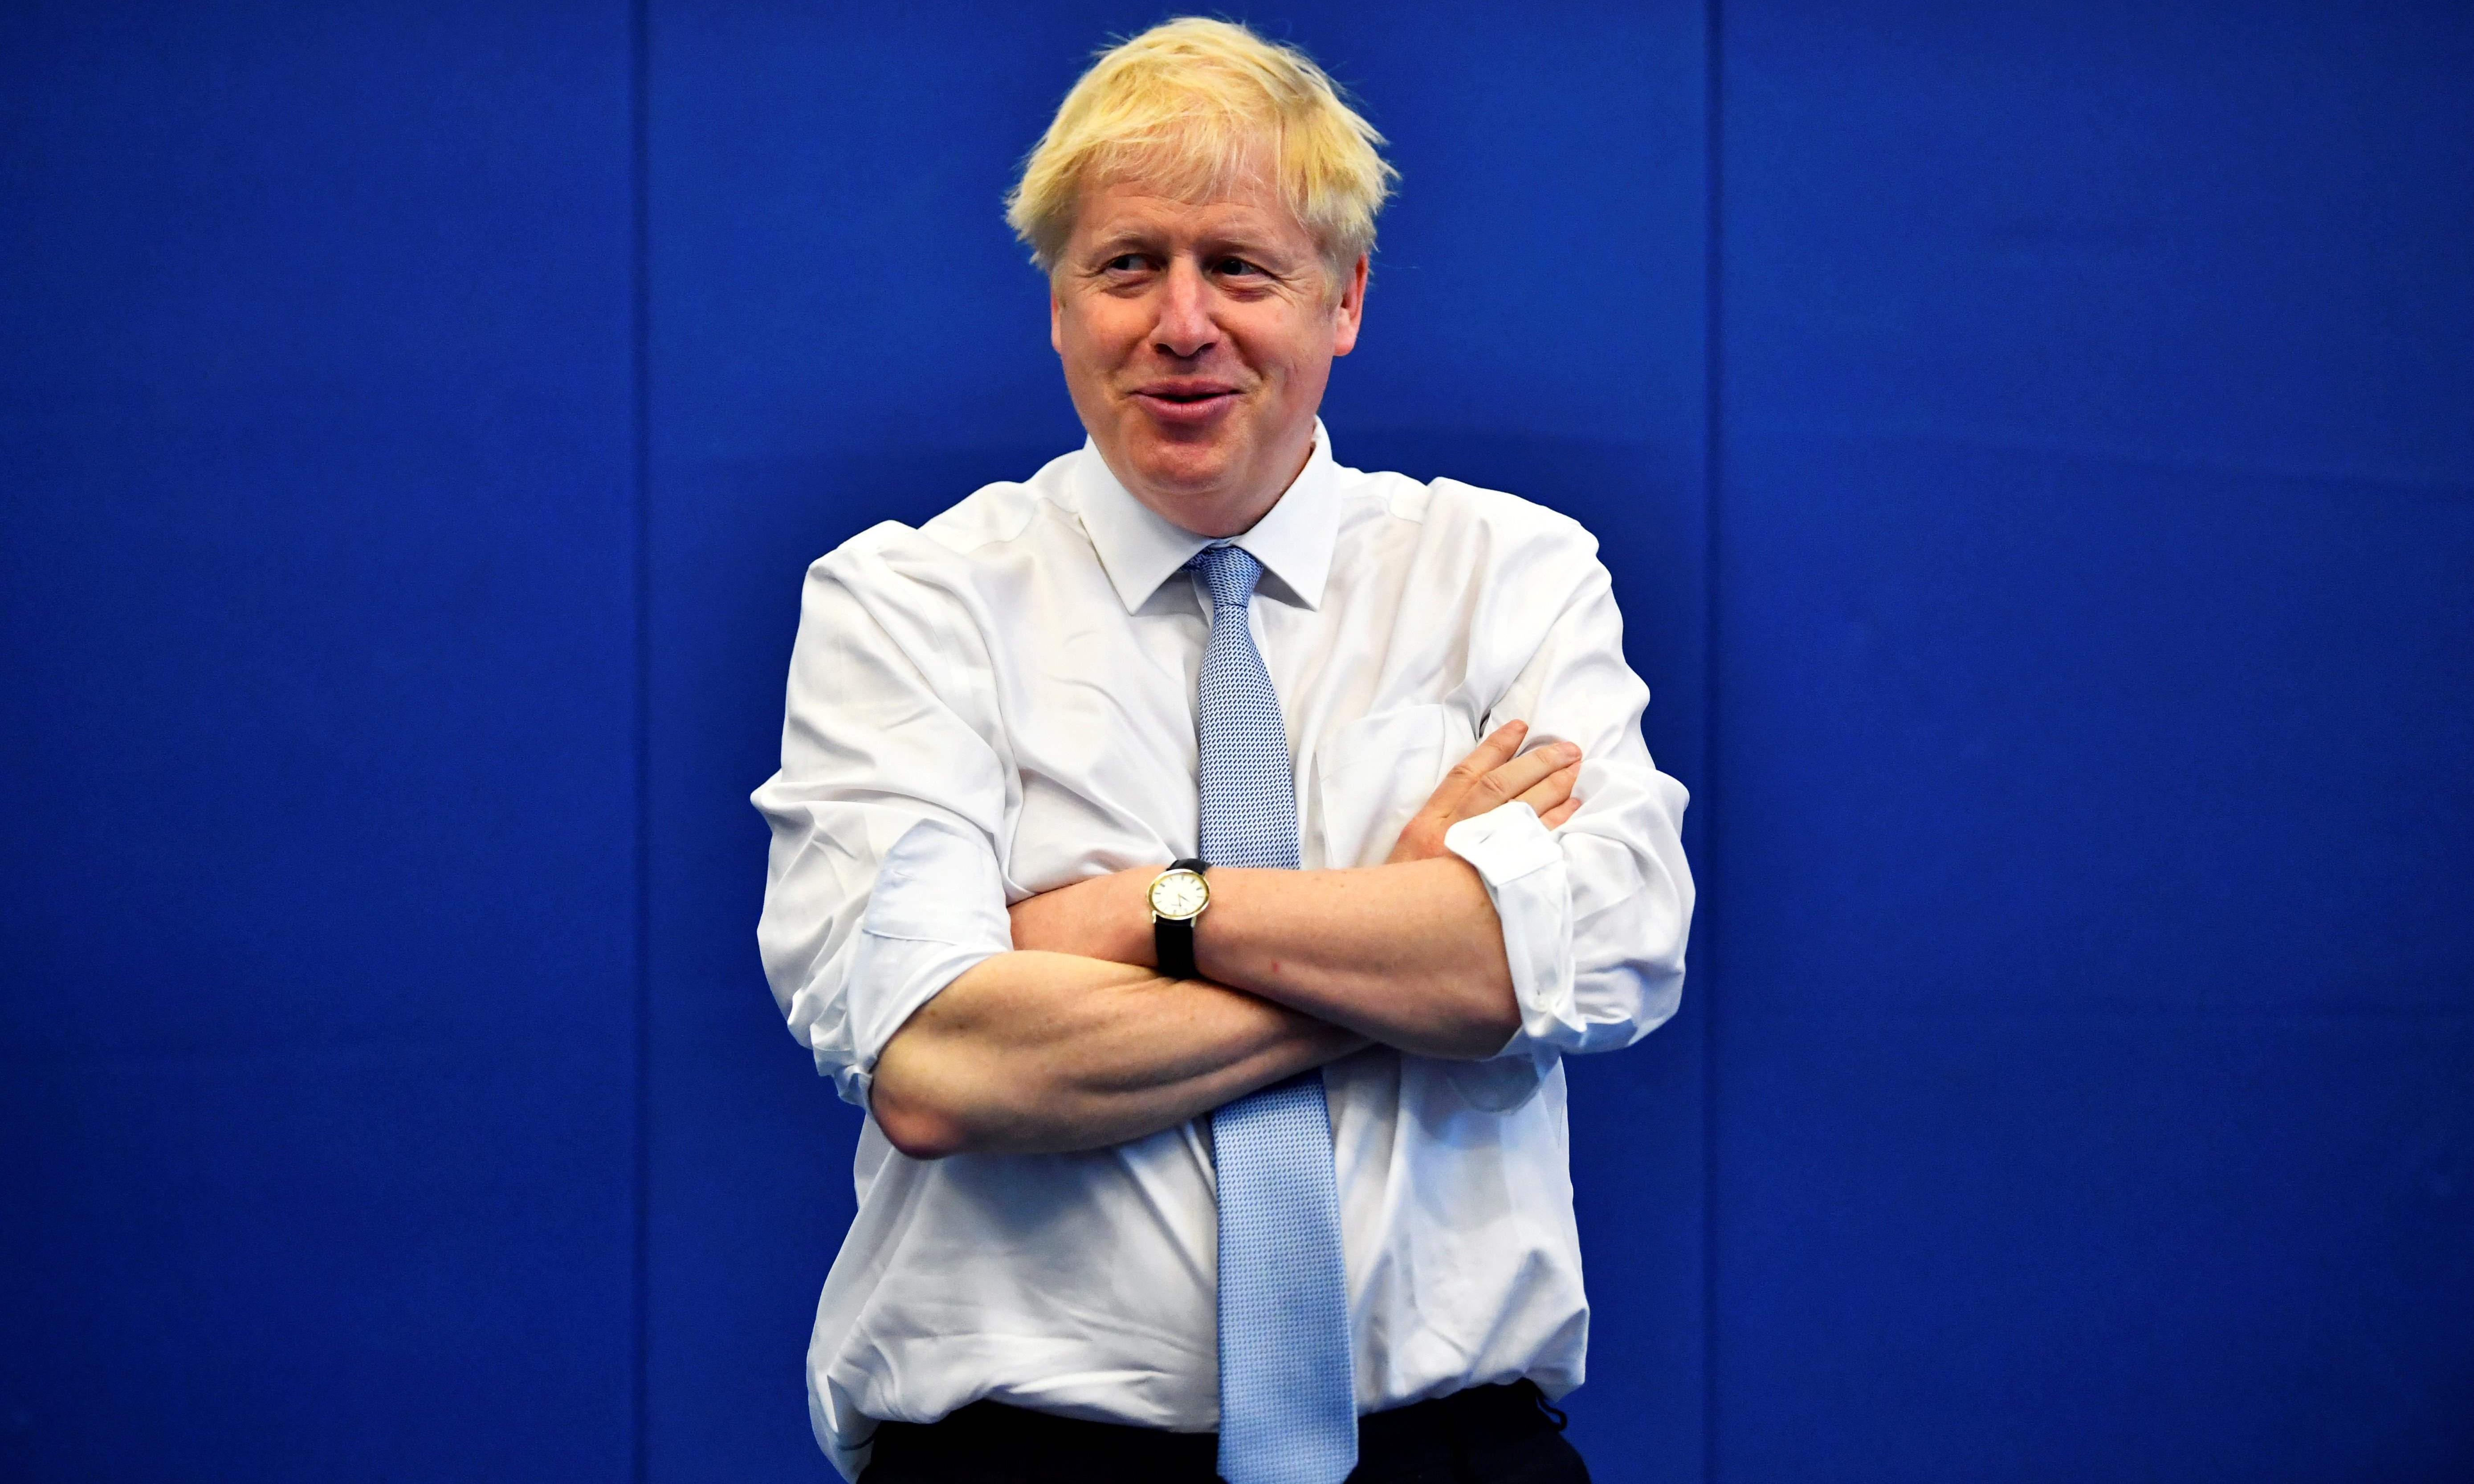 What does Boris Johnson's terrible novel Seventy-Two Virgins tell us about him?